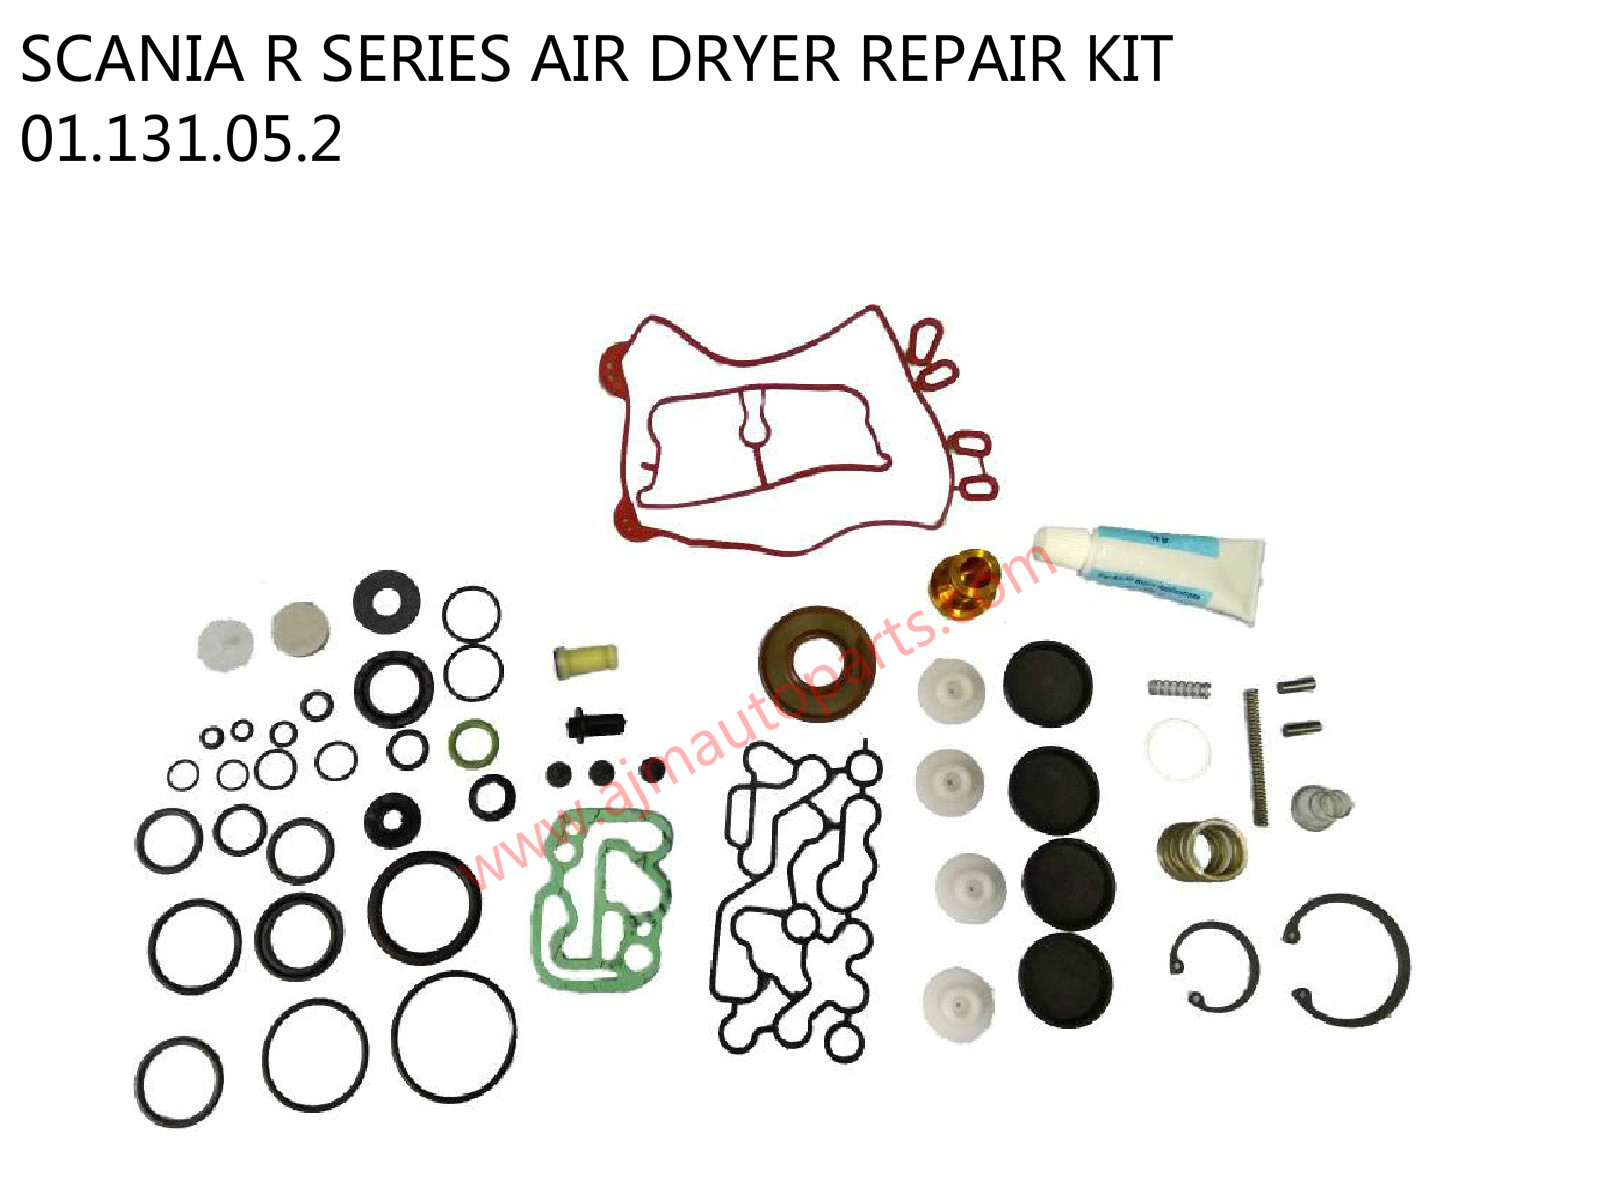 SCANIA 124 AIR DRYER REPAIR KIT